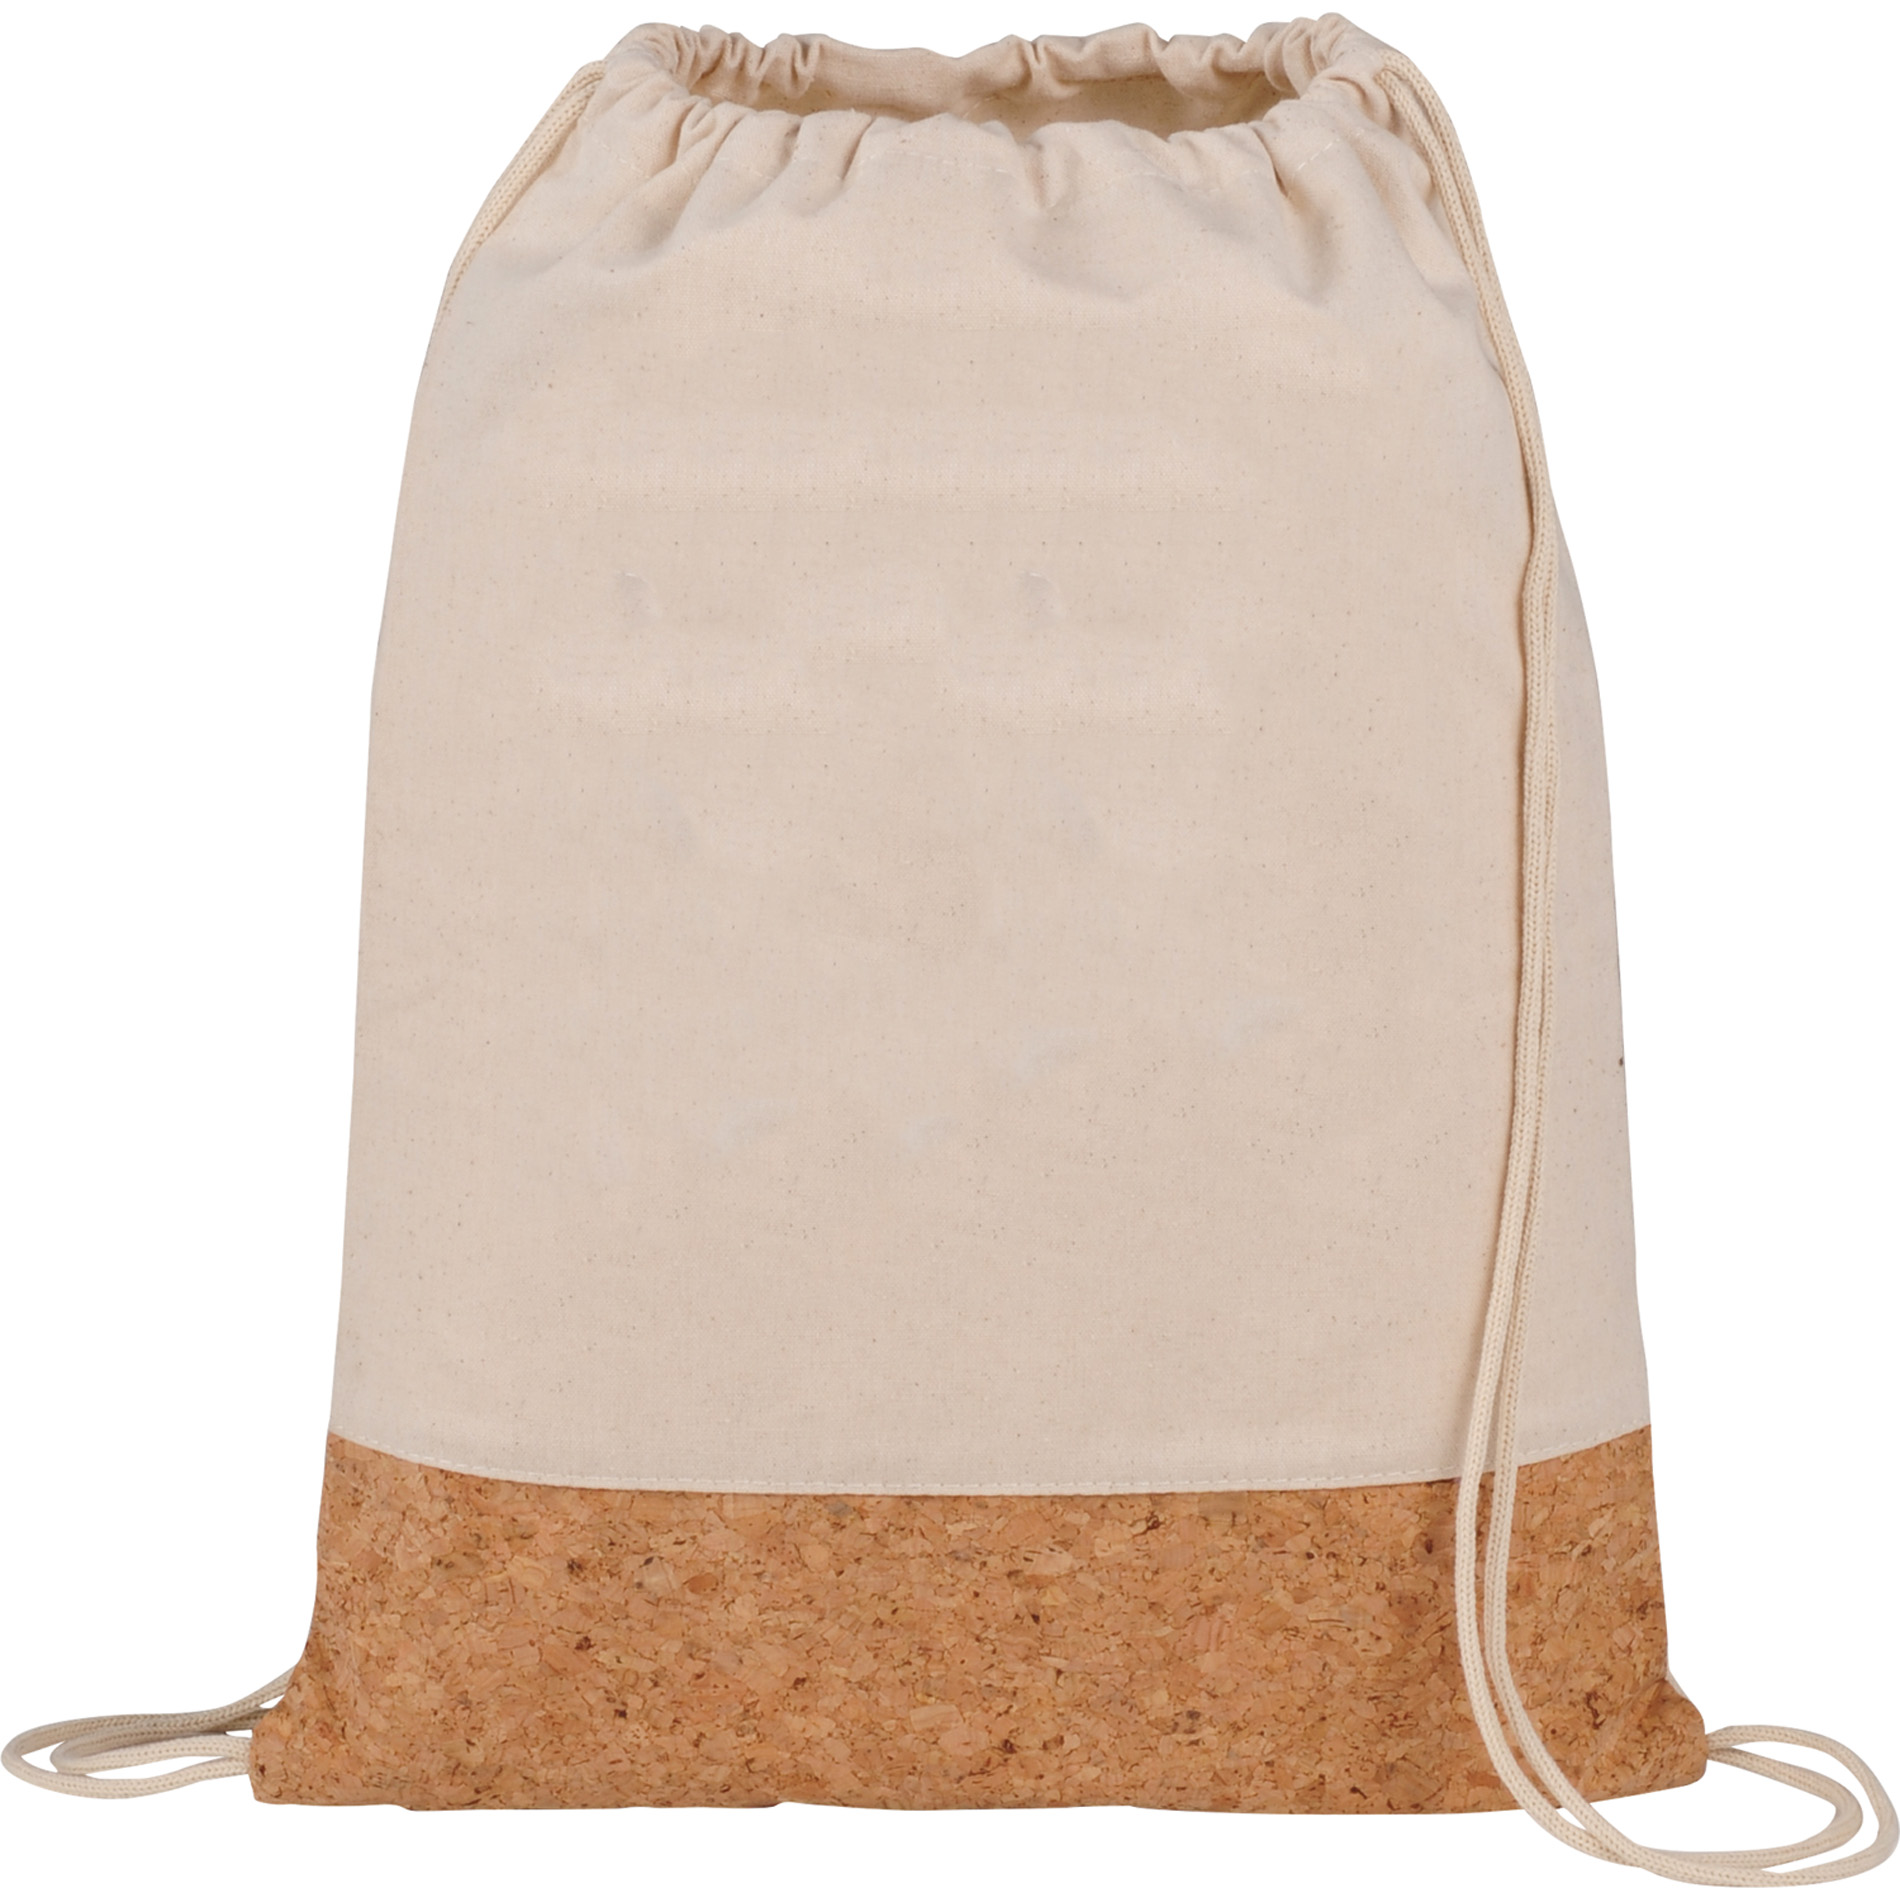 LEEDS 3005-19 - Cotton and Cork Drawstring Bag